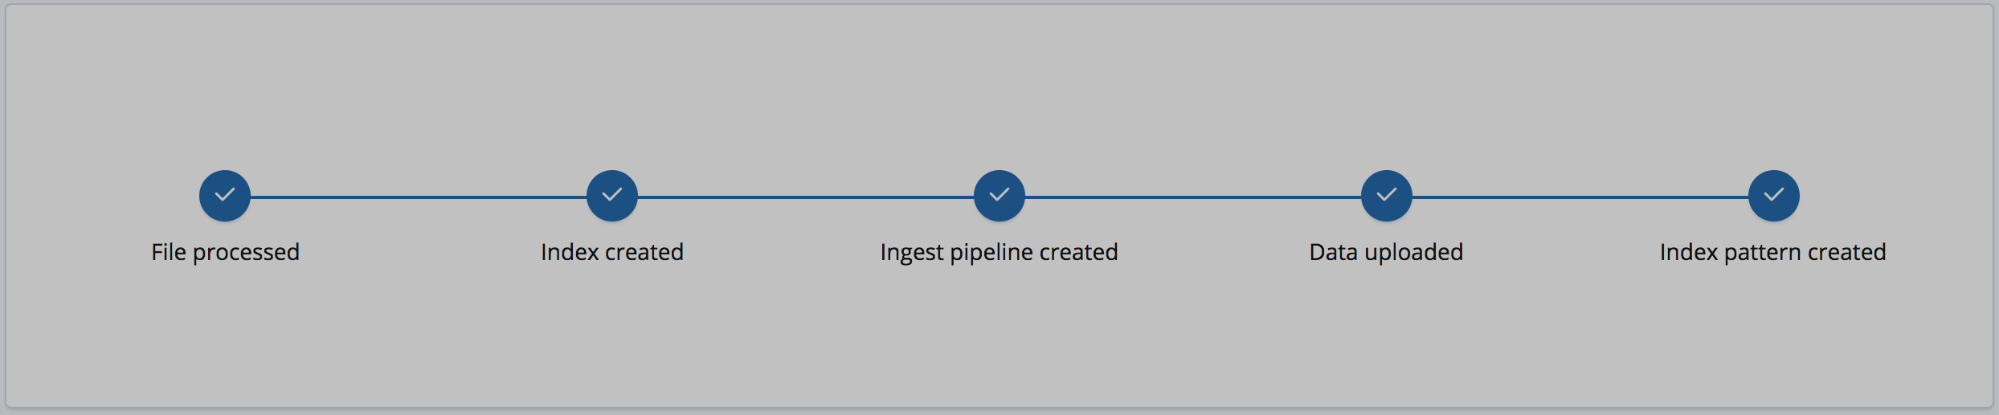 Import CSV and Log Data into Elasticsearch from Kibana with File